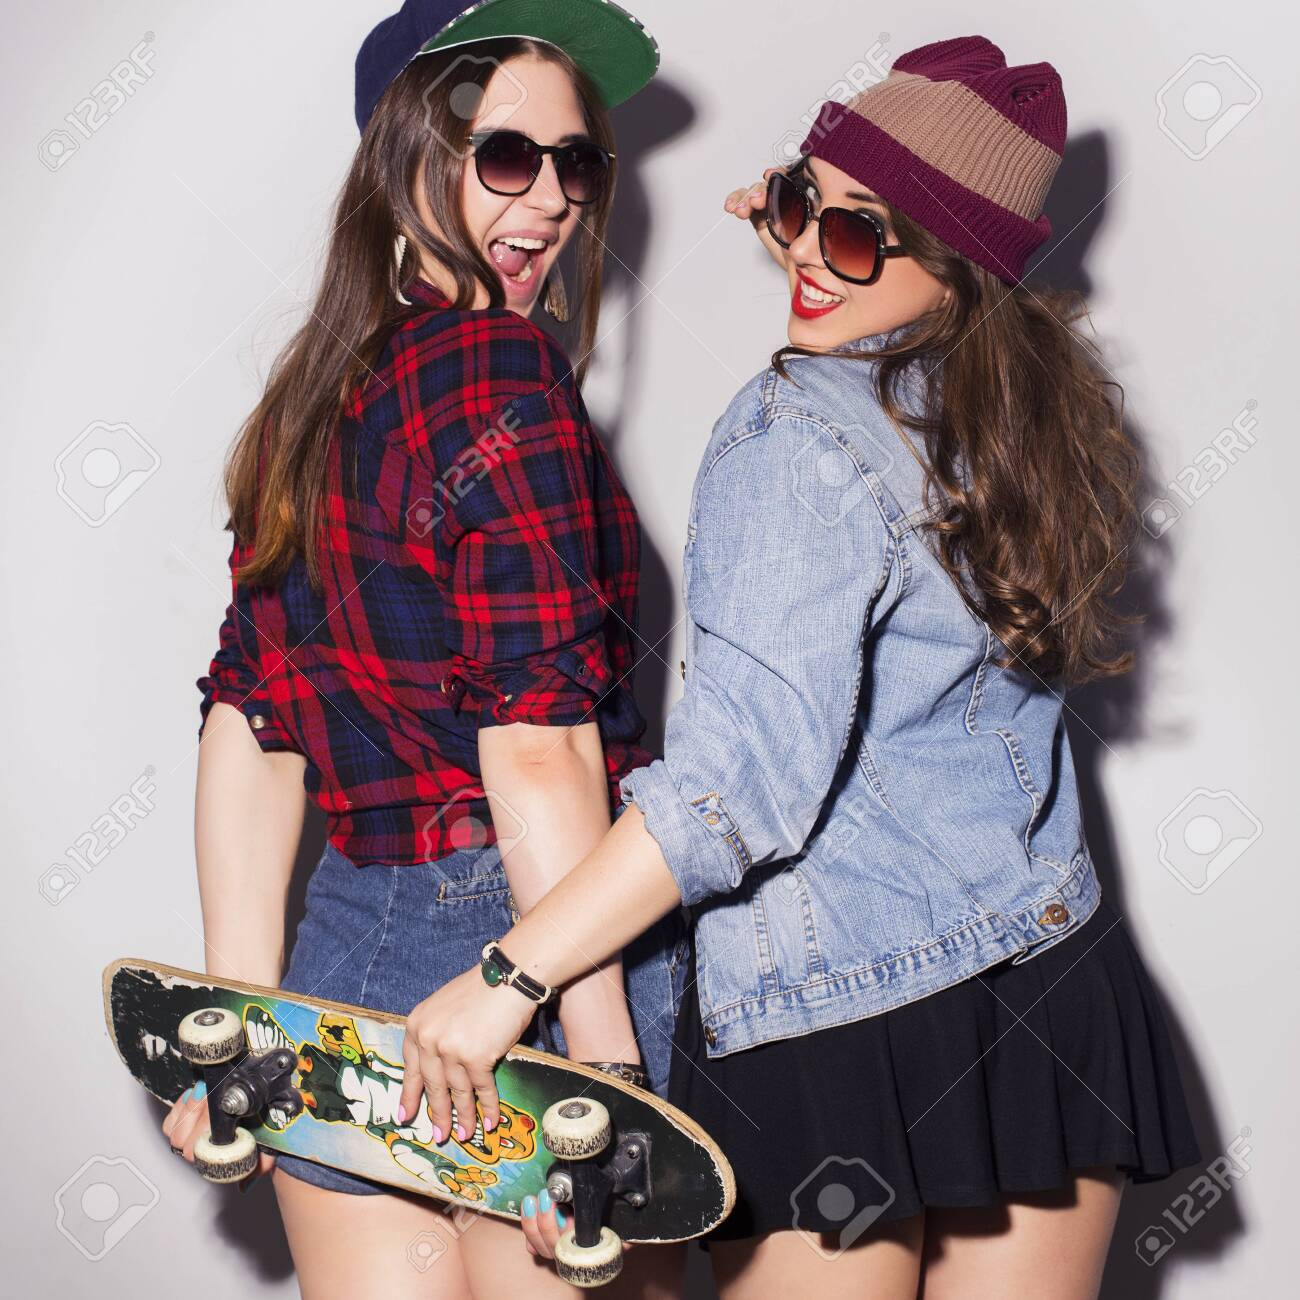 Two beautiful brunette women (girls) teenagers spend time together having fun, make funny faces. Casual hipster outfit, jeans jacket and plaid shirt, with a skateboard - 145673908